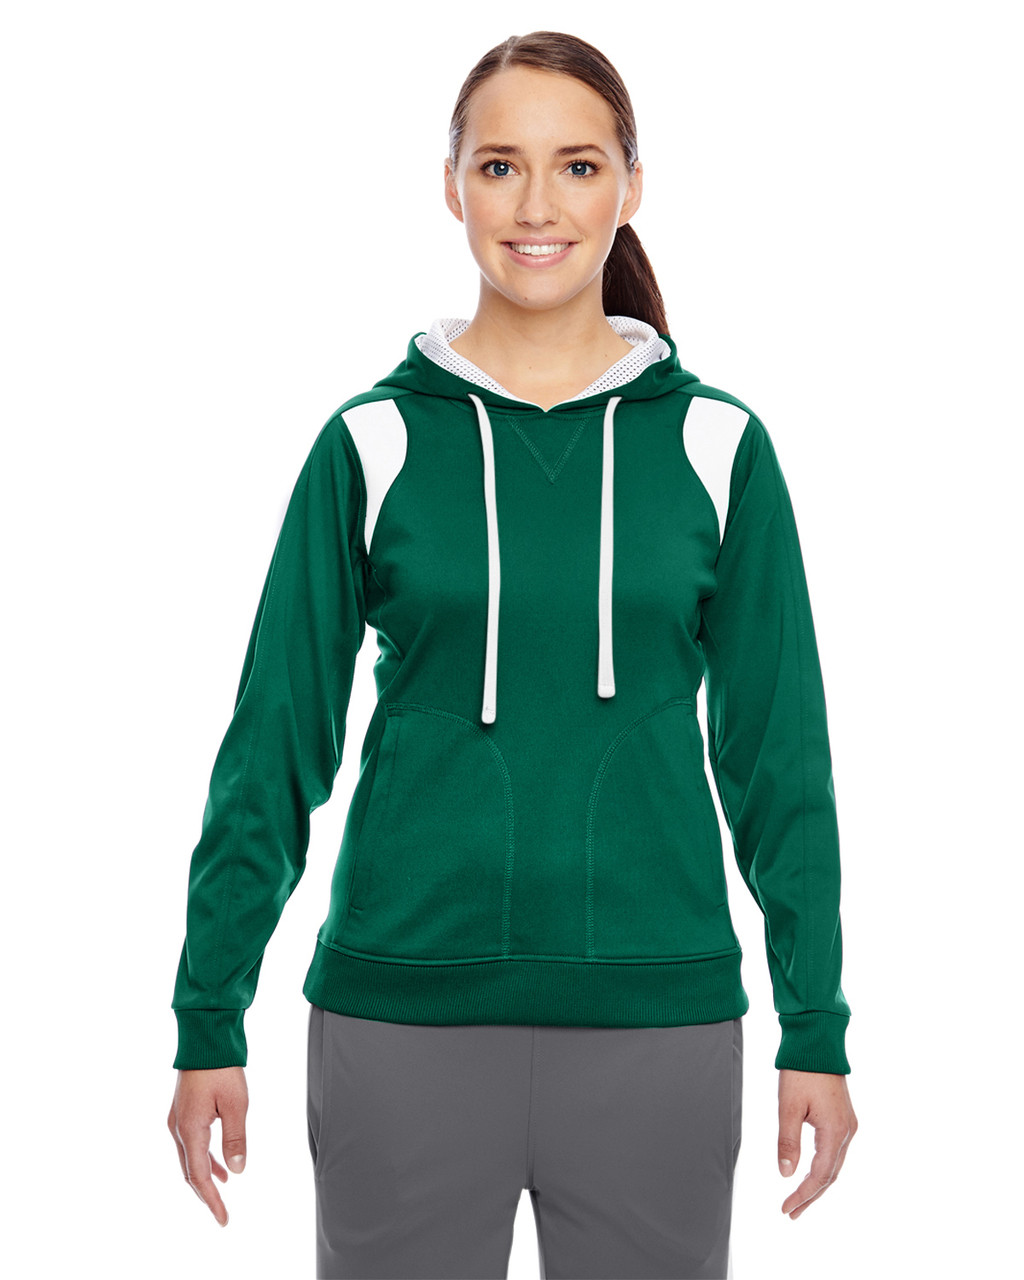 Forest/White - TT30W Team 365 Ladies' Elite Performance Hoodie | Blankclothing.ca